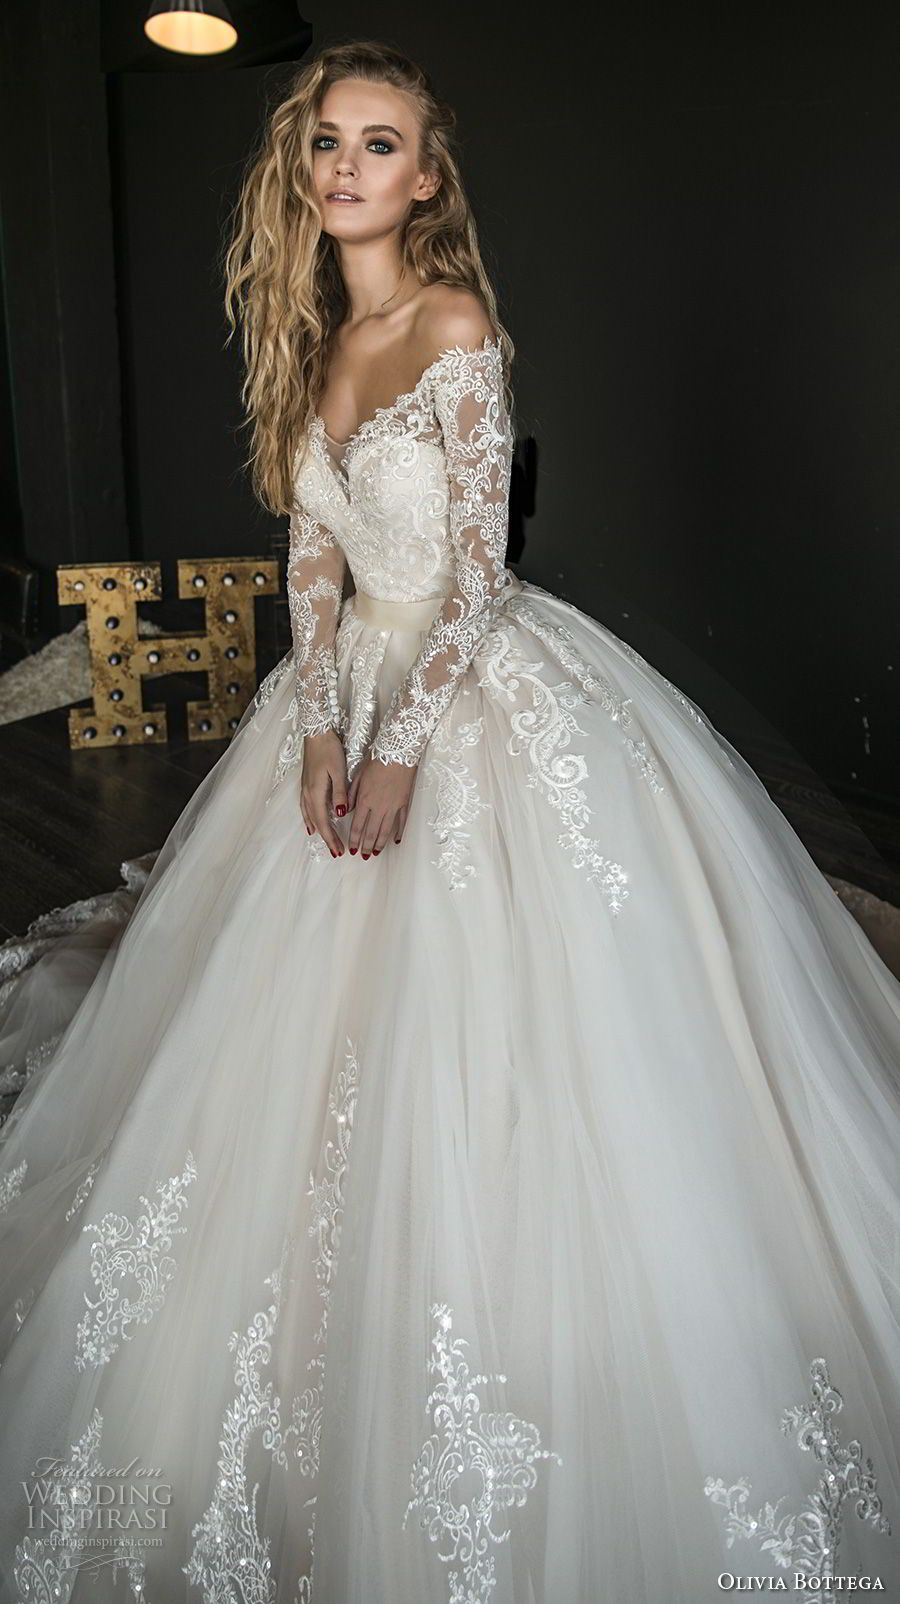 Olivia bottega wedding dresses lace button ball gowns and bodice